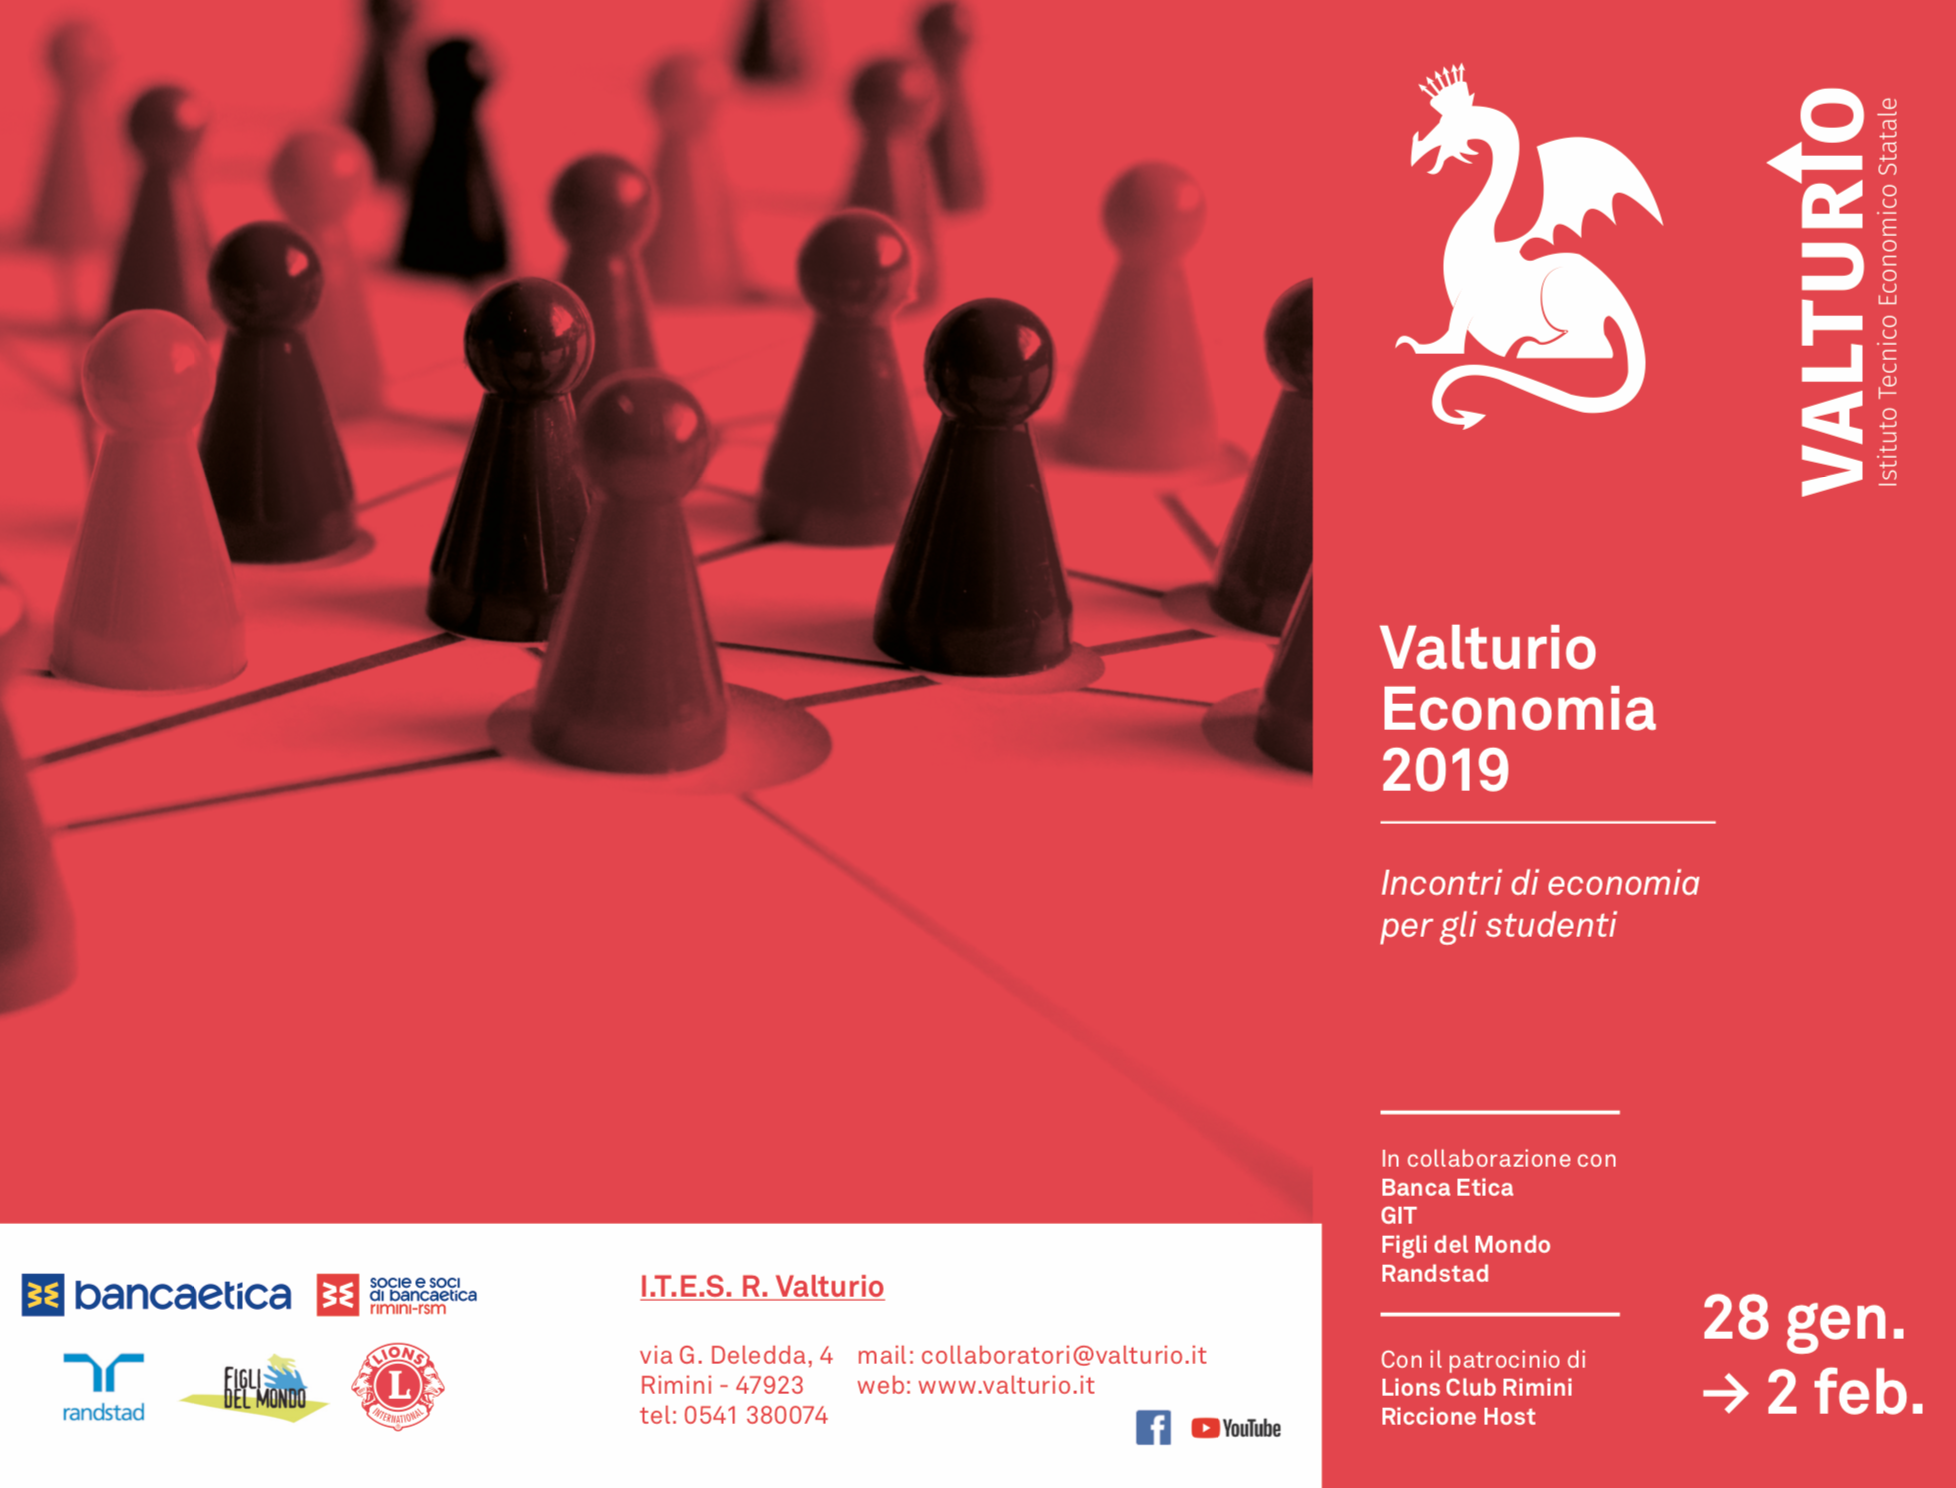 Valturio €conomy Week 2019: incontri e workshop di economia per gli studenti